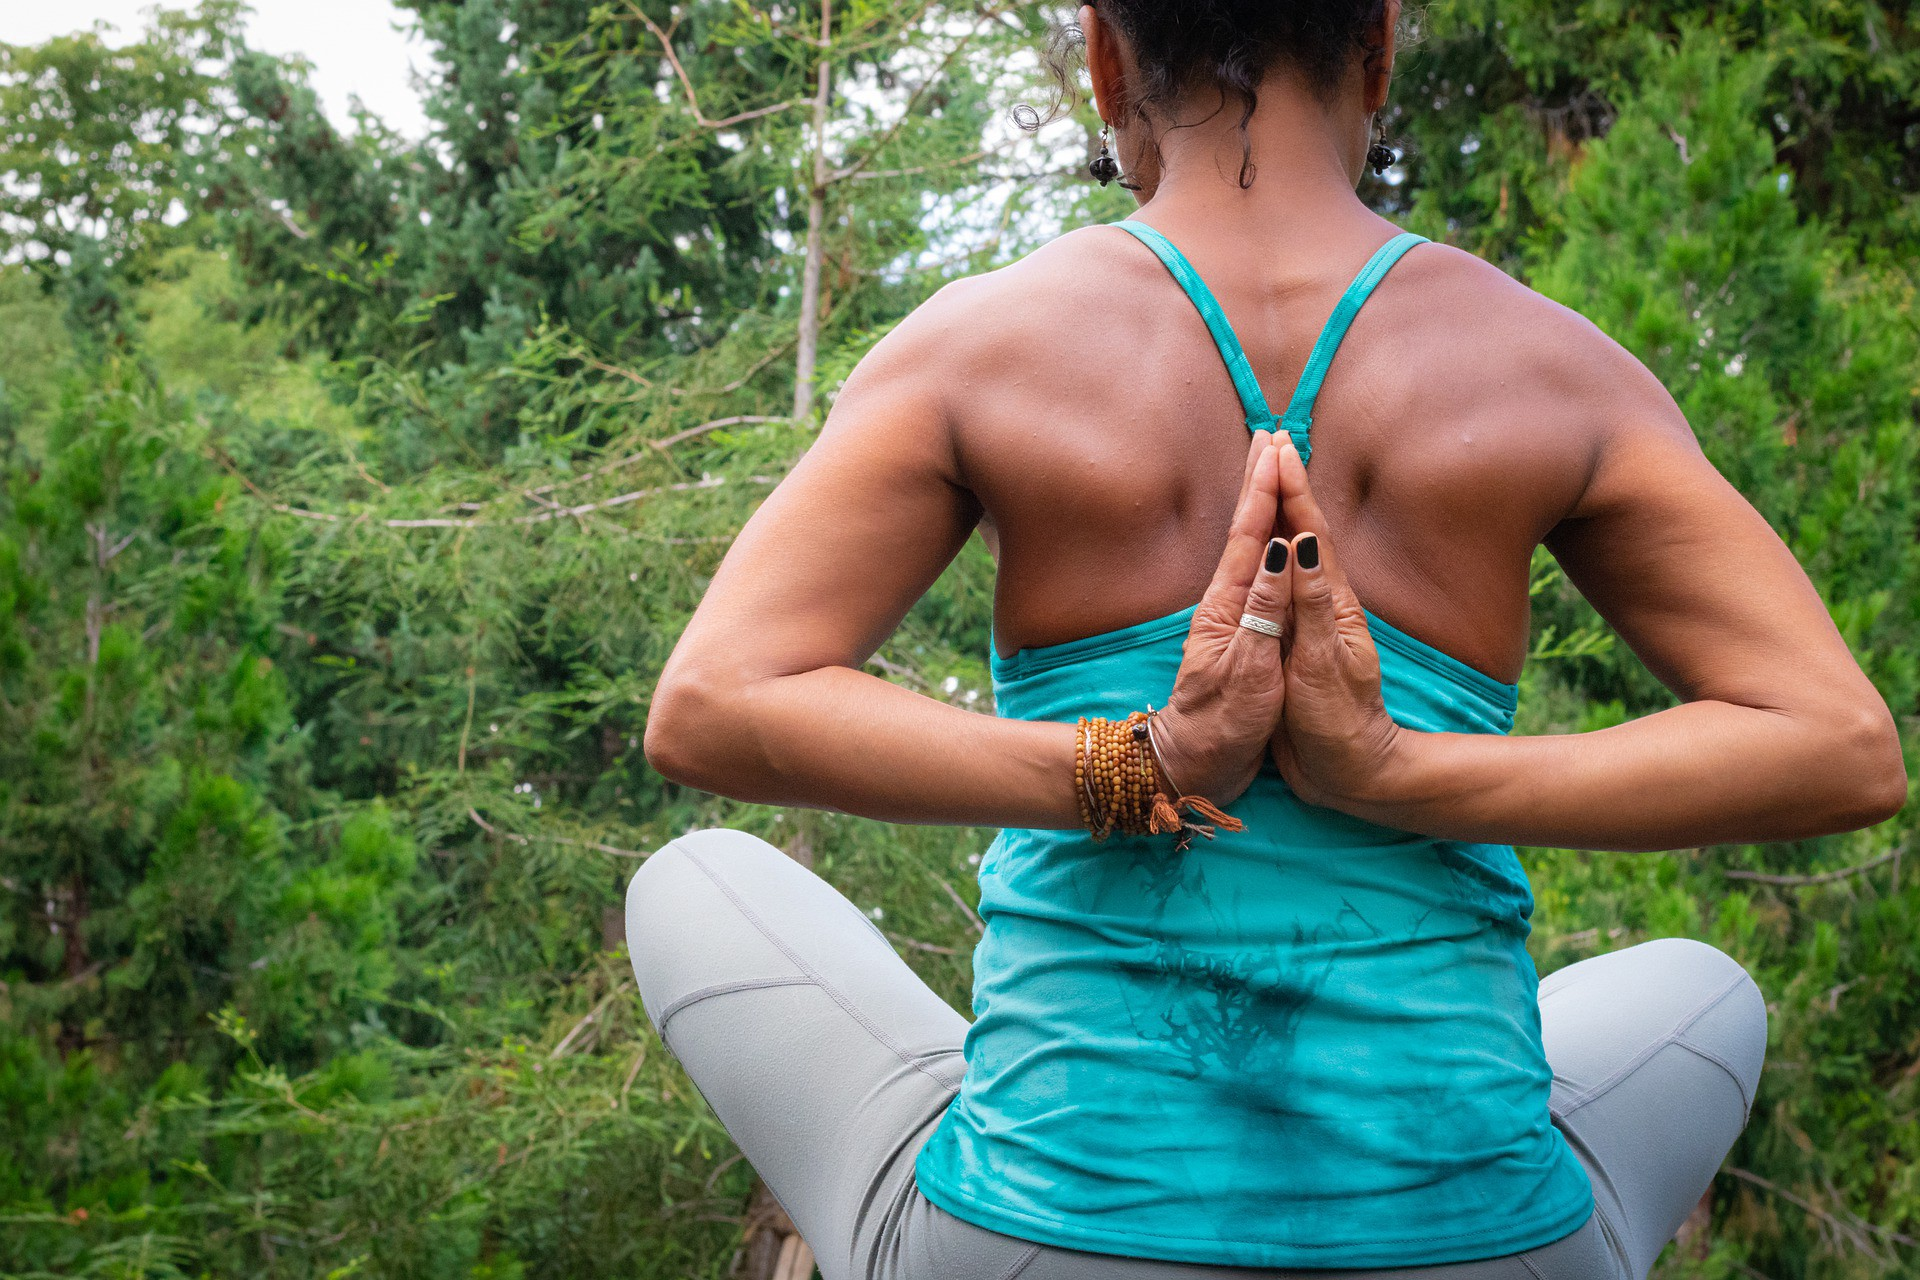 A woman practices yoga outside to help fight weight gain as she gets older. We see her from the back and her hands are behind her in prayer position. She is wearing a blue tank top and gray leggings.